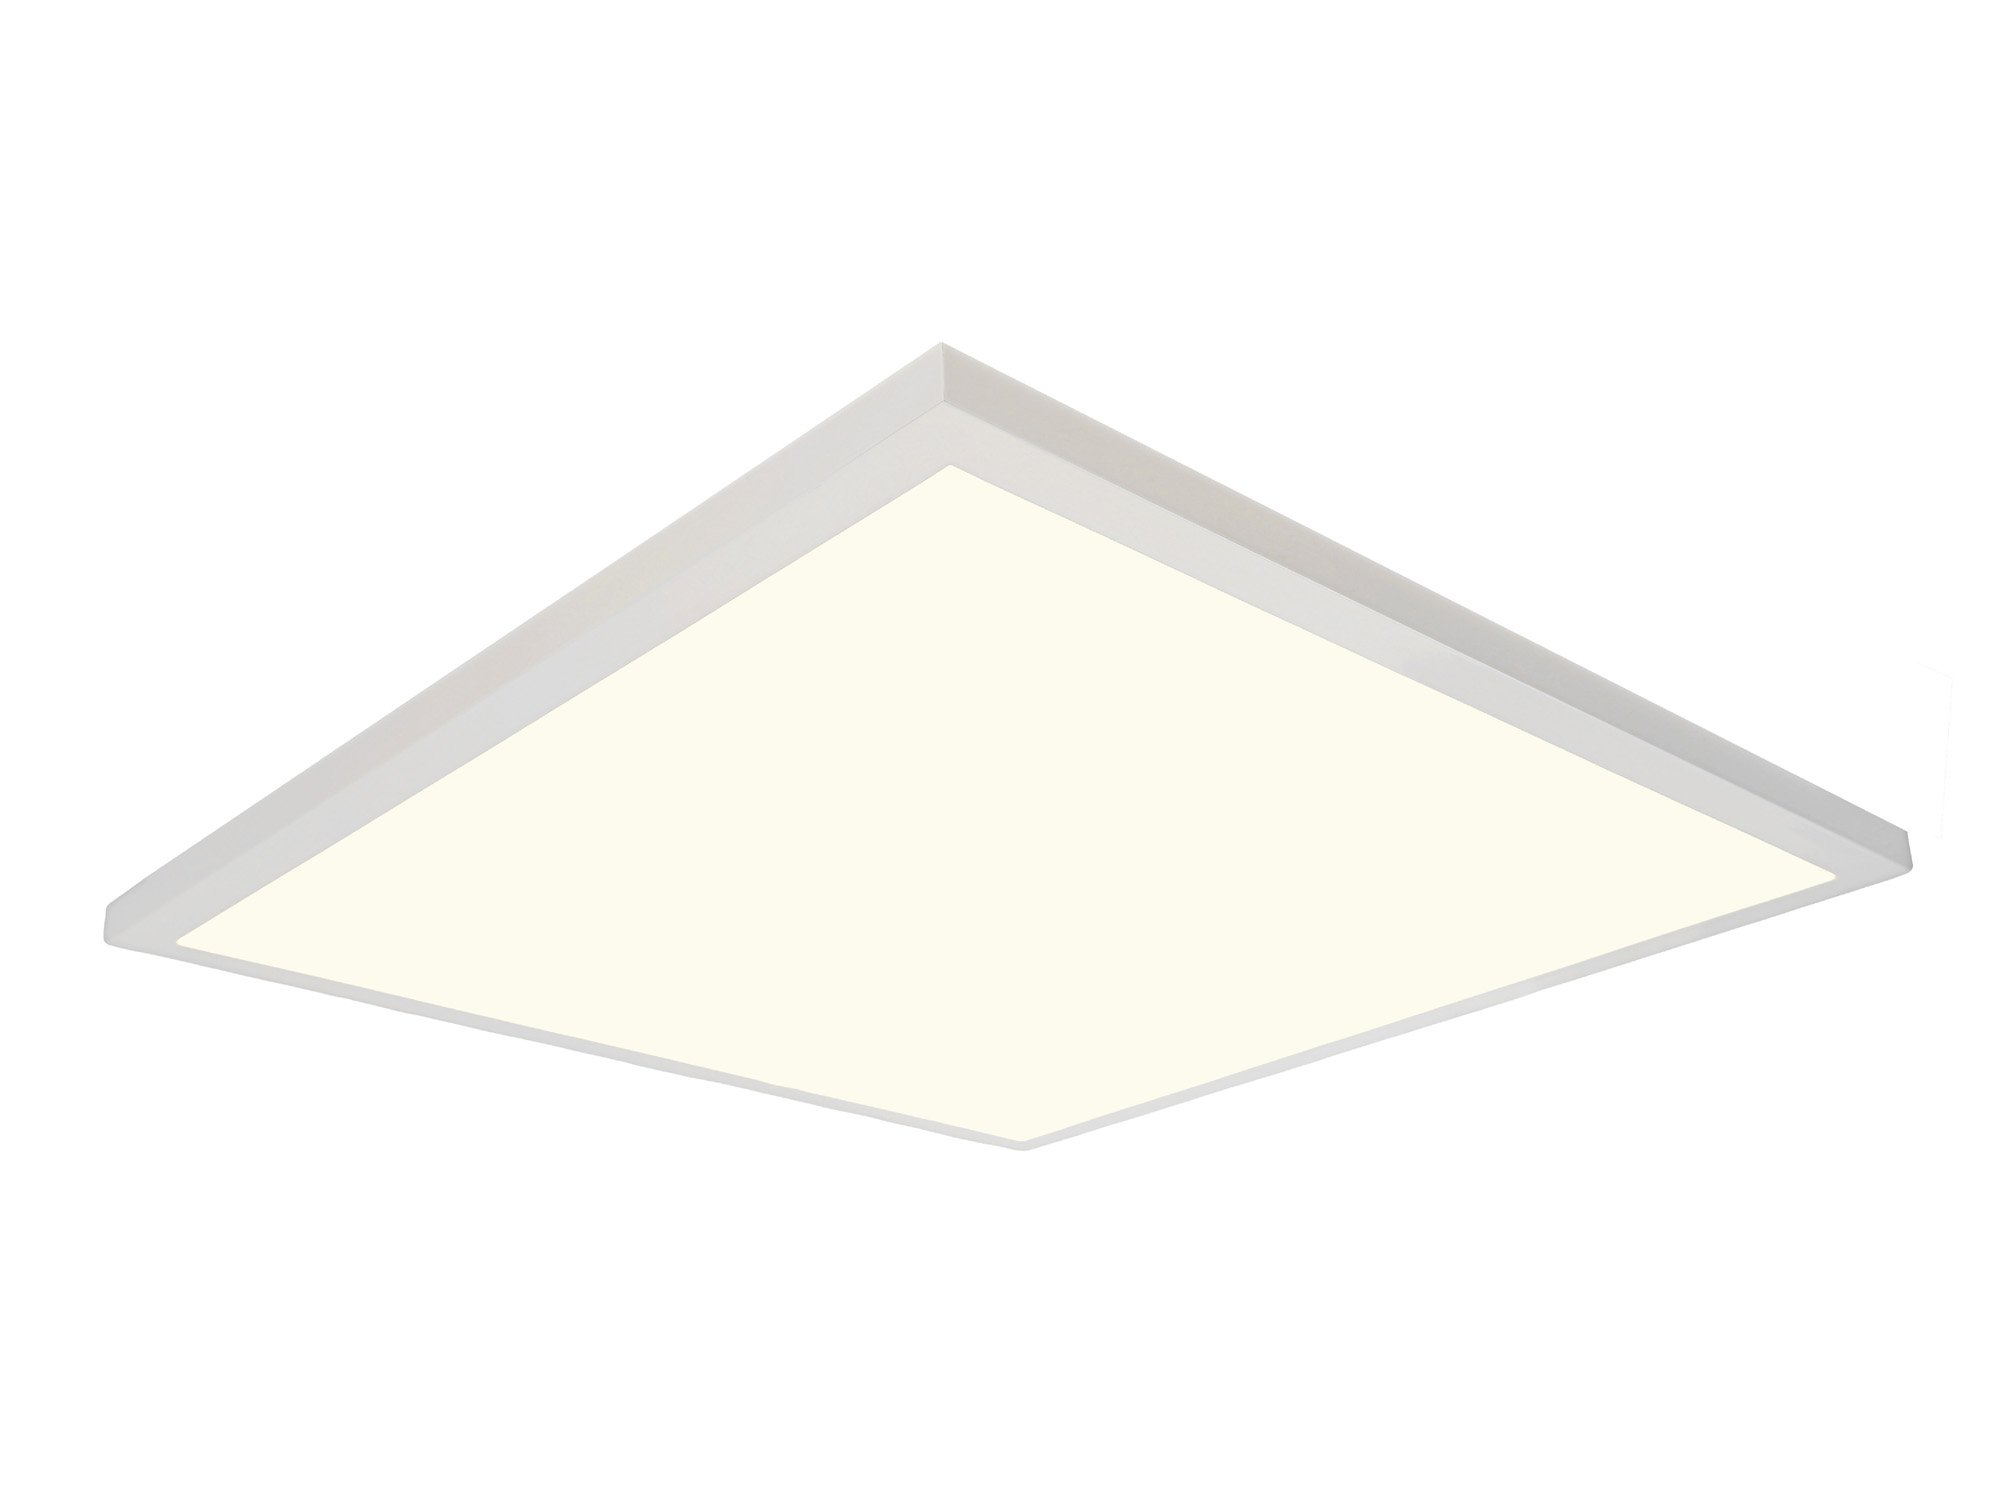 Designers Fountain PF2240XMD27 2700K LED Panel 2' X 2' Ultra Thin Edge-Lit 40W Flat Light Residential Flushmount Surface Mount/Commercial Drop Ceiling Fixture 4000 Lm-2700 Cct, 2'X2' , White